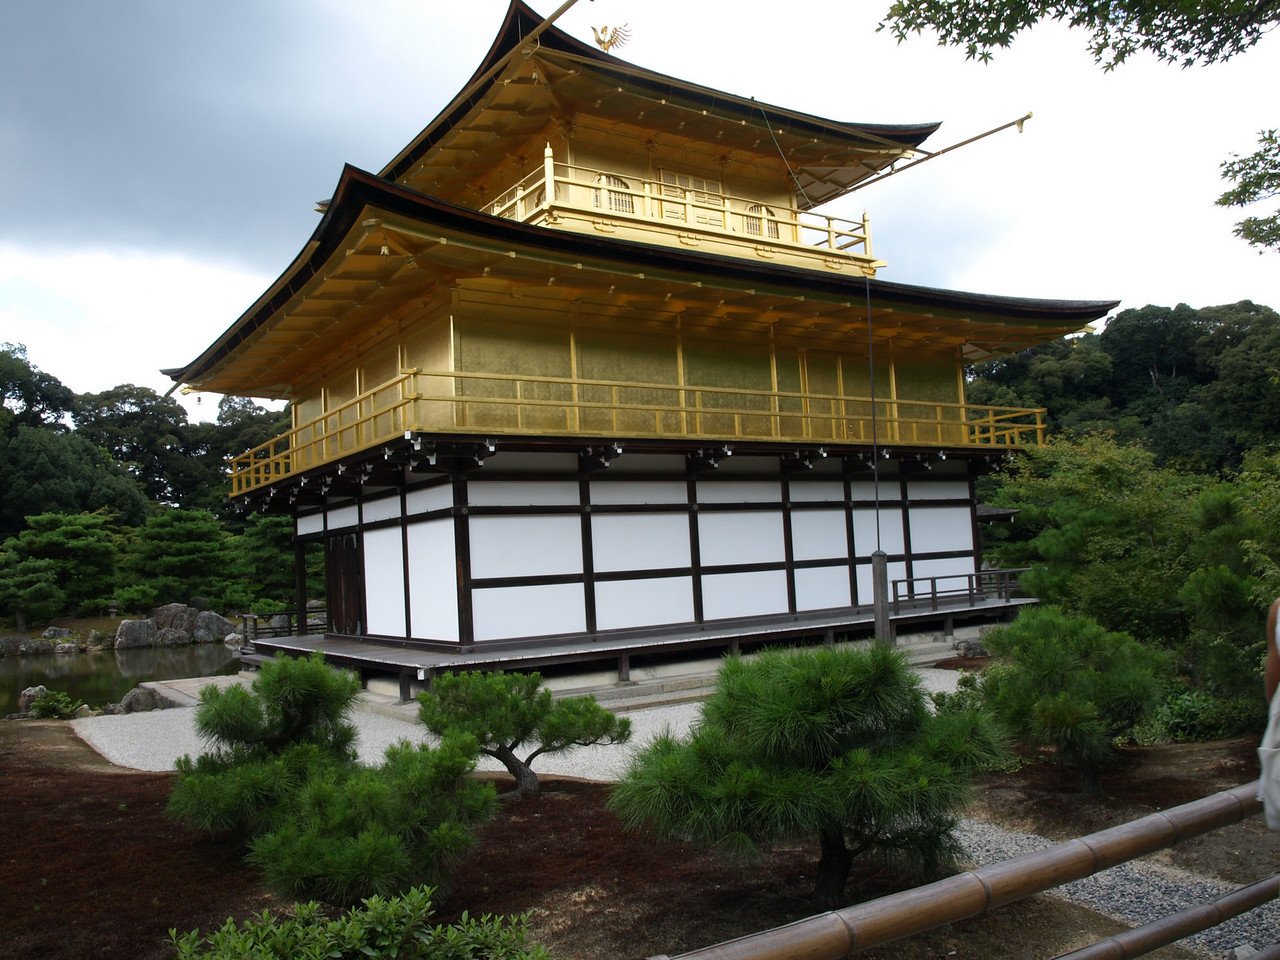 The shogun's wish was to cover the entire building in gold leaf, but was only able to cover the ceiling of the third floor. When the structure was rebuilt after it was burned down by a young student monk in 1955, the top two floors were covered in gold leaf to honor the shogun's wish.